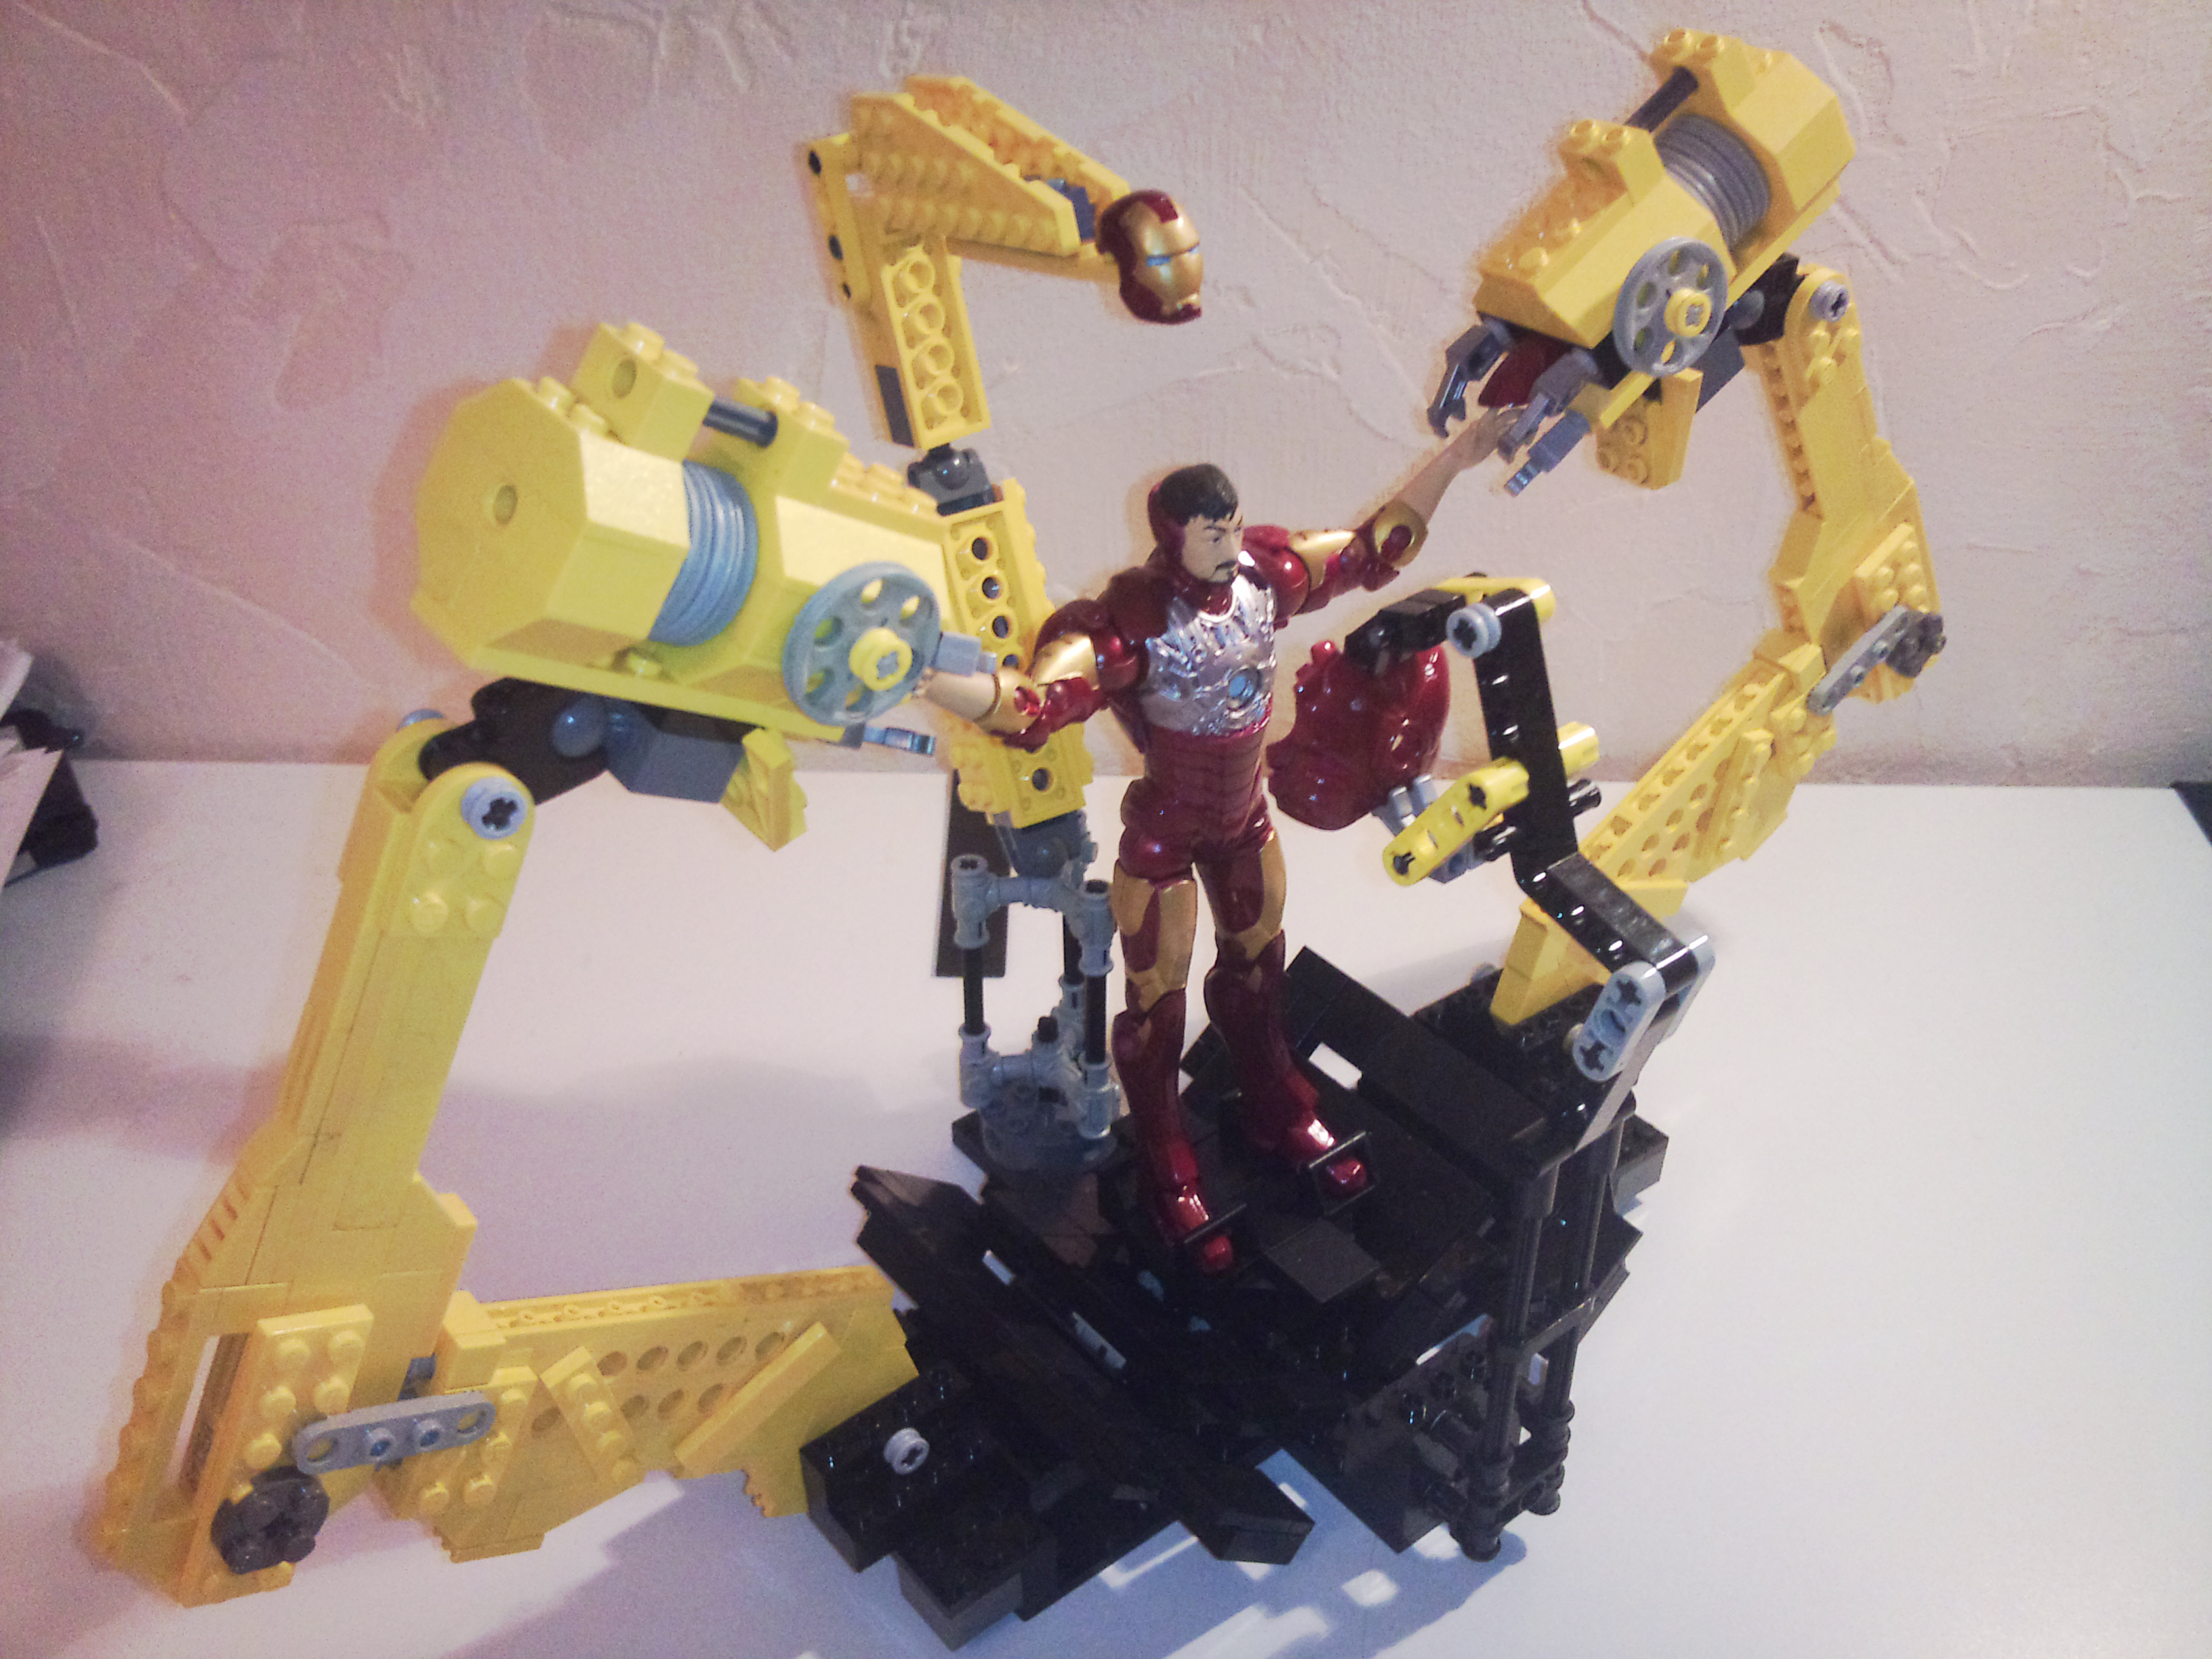 Marvel Legends scale Lego Iron Man Suit-up Gantry by